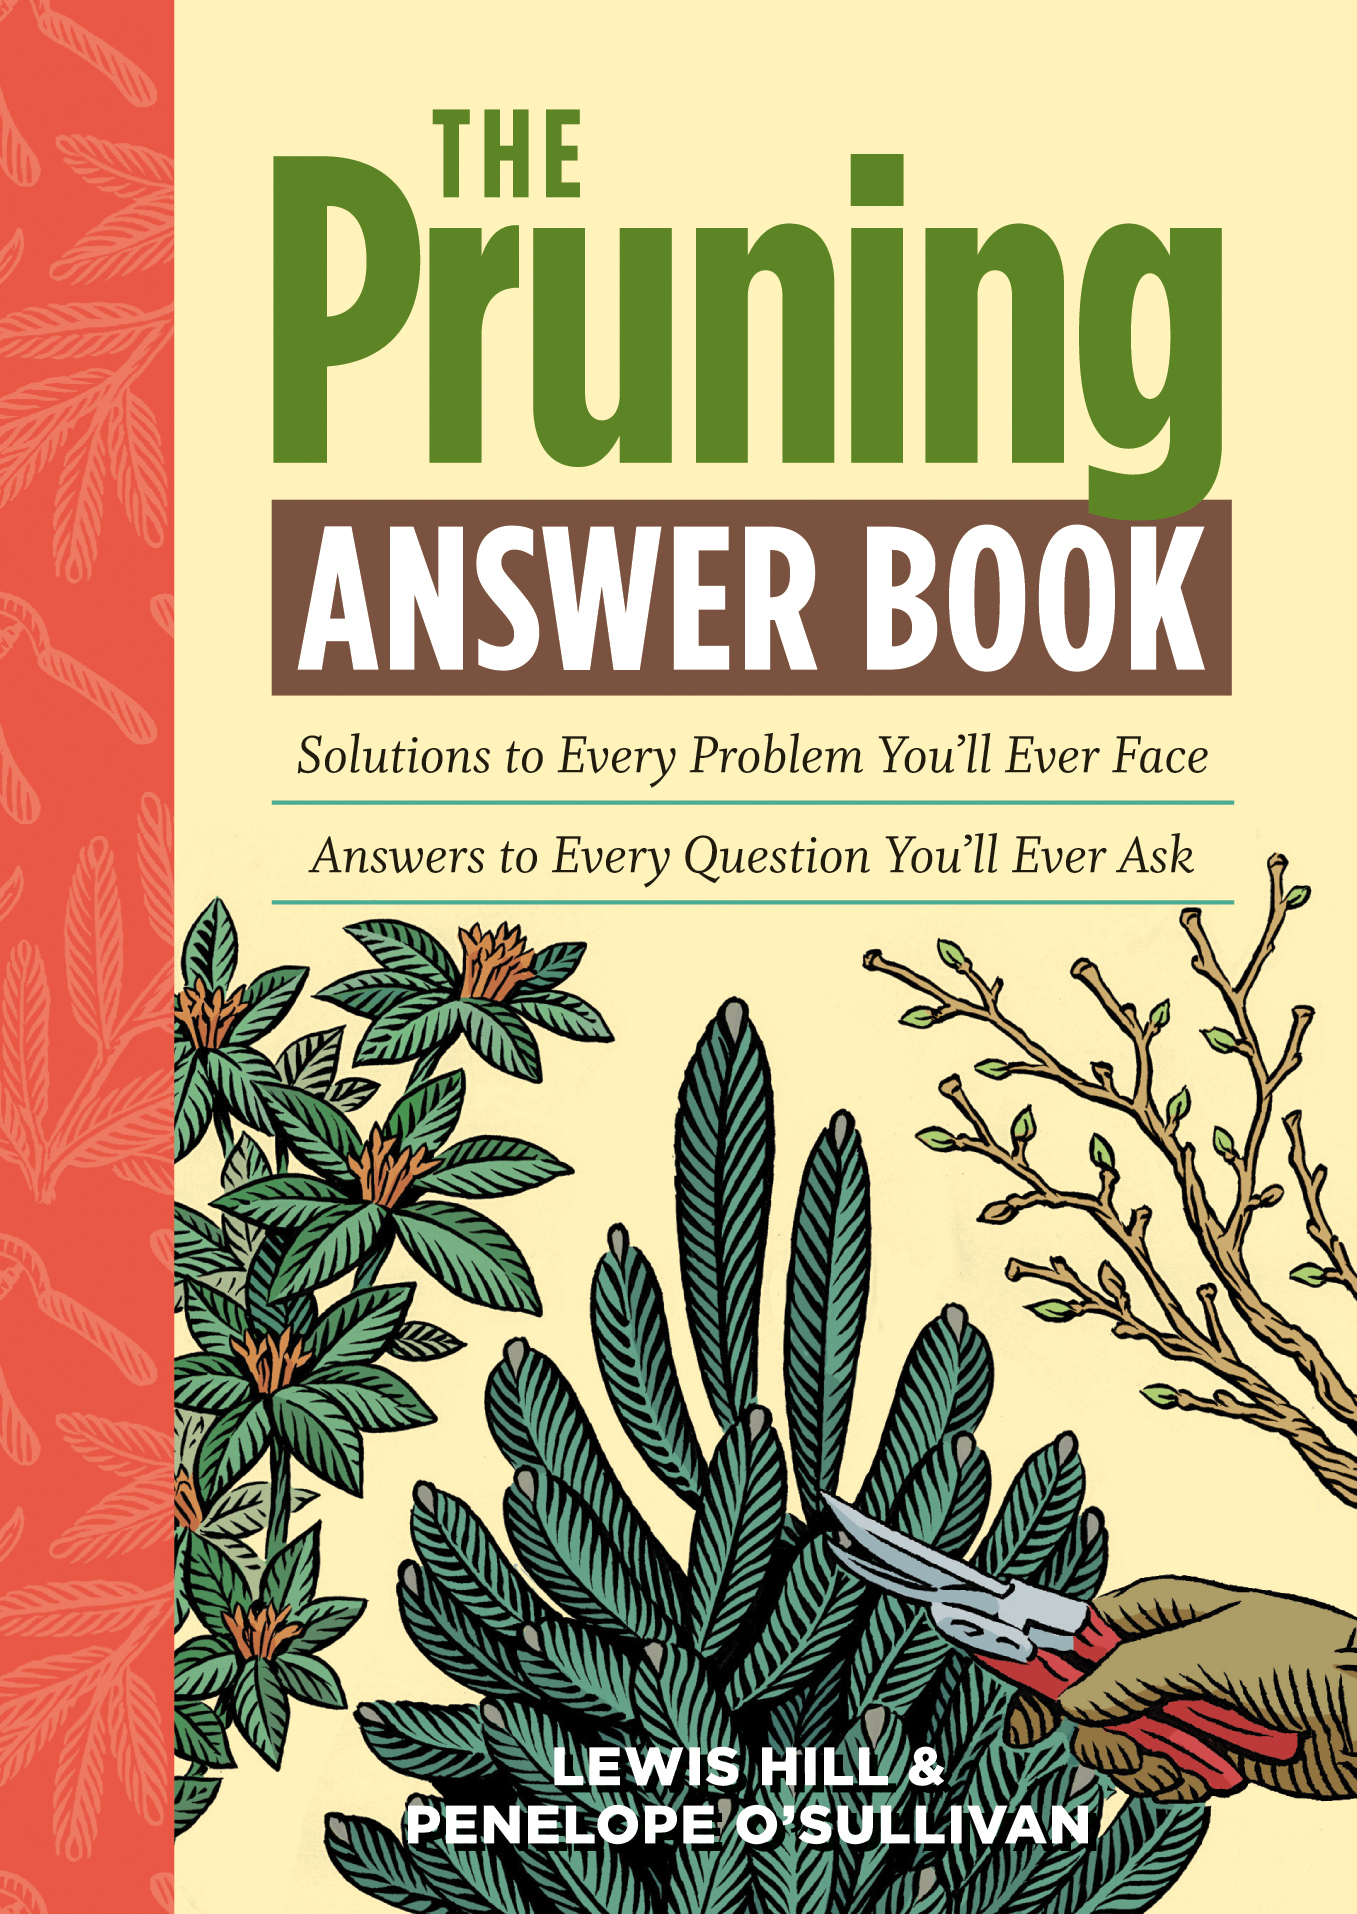 The Pruning Answer Book Solutions to Every Problem You'll Ever Face; Answers to Every Question You'll Ever Ask - Lewis Hill